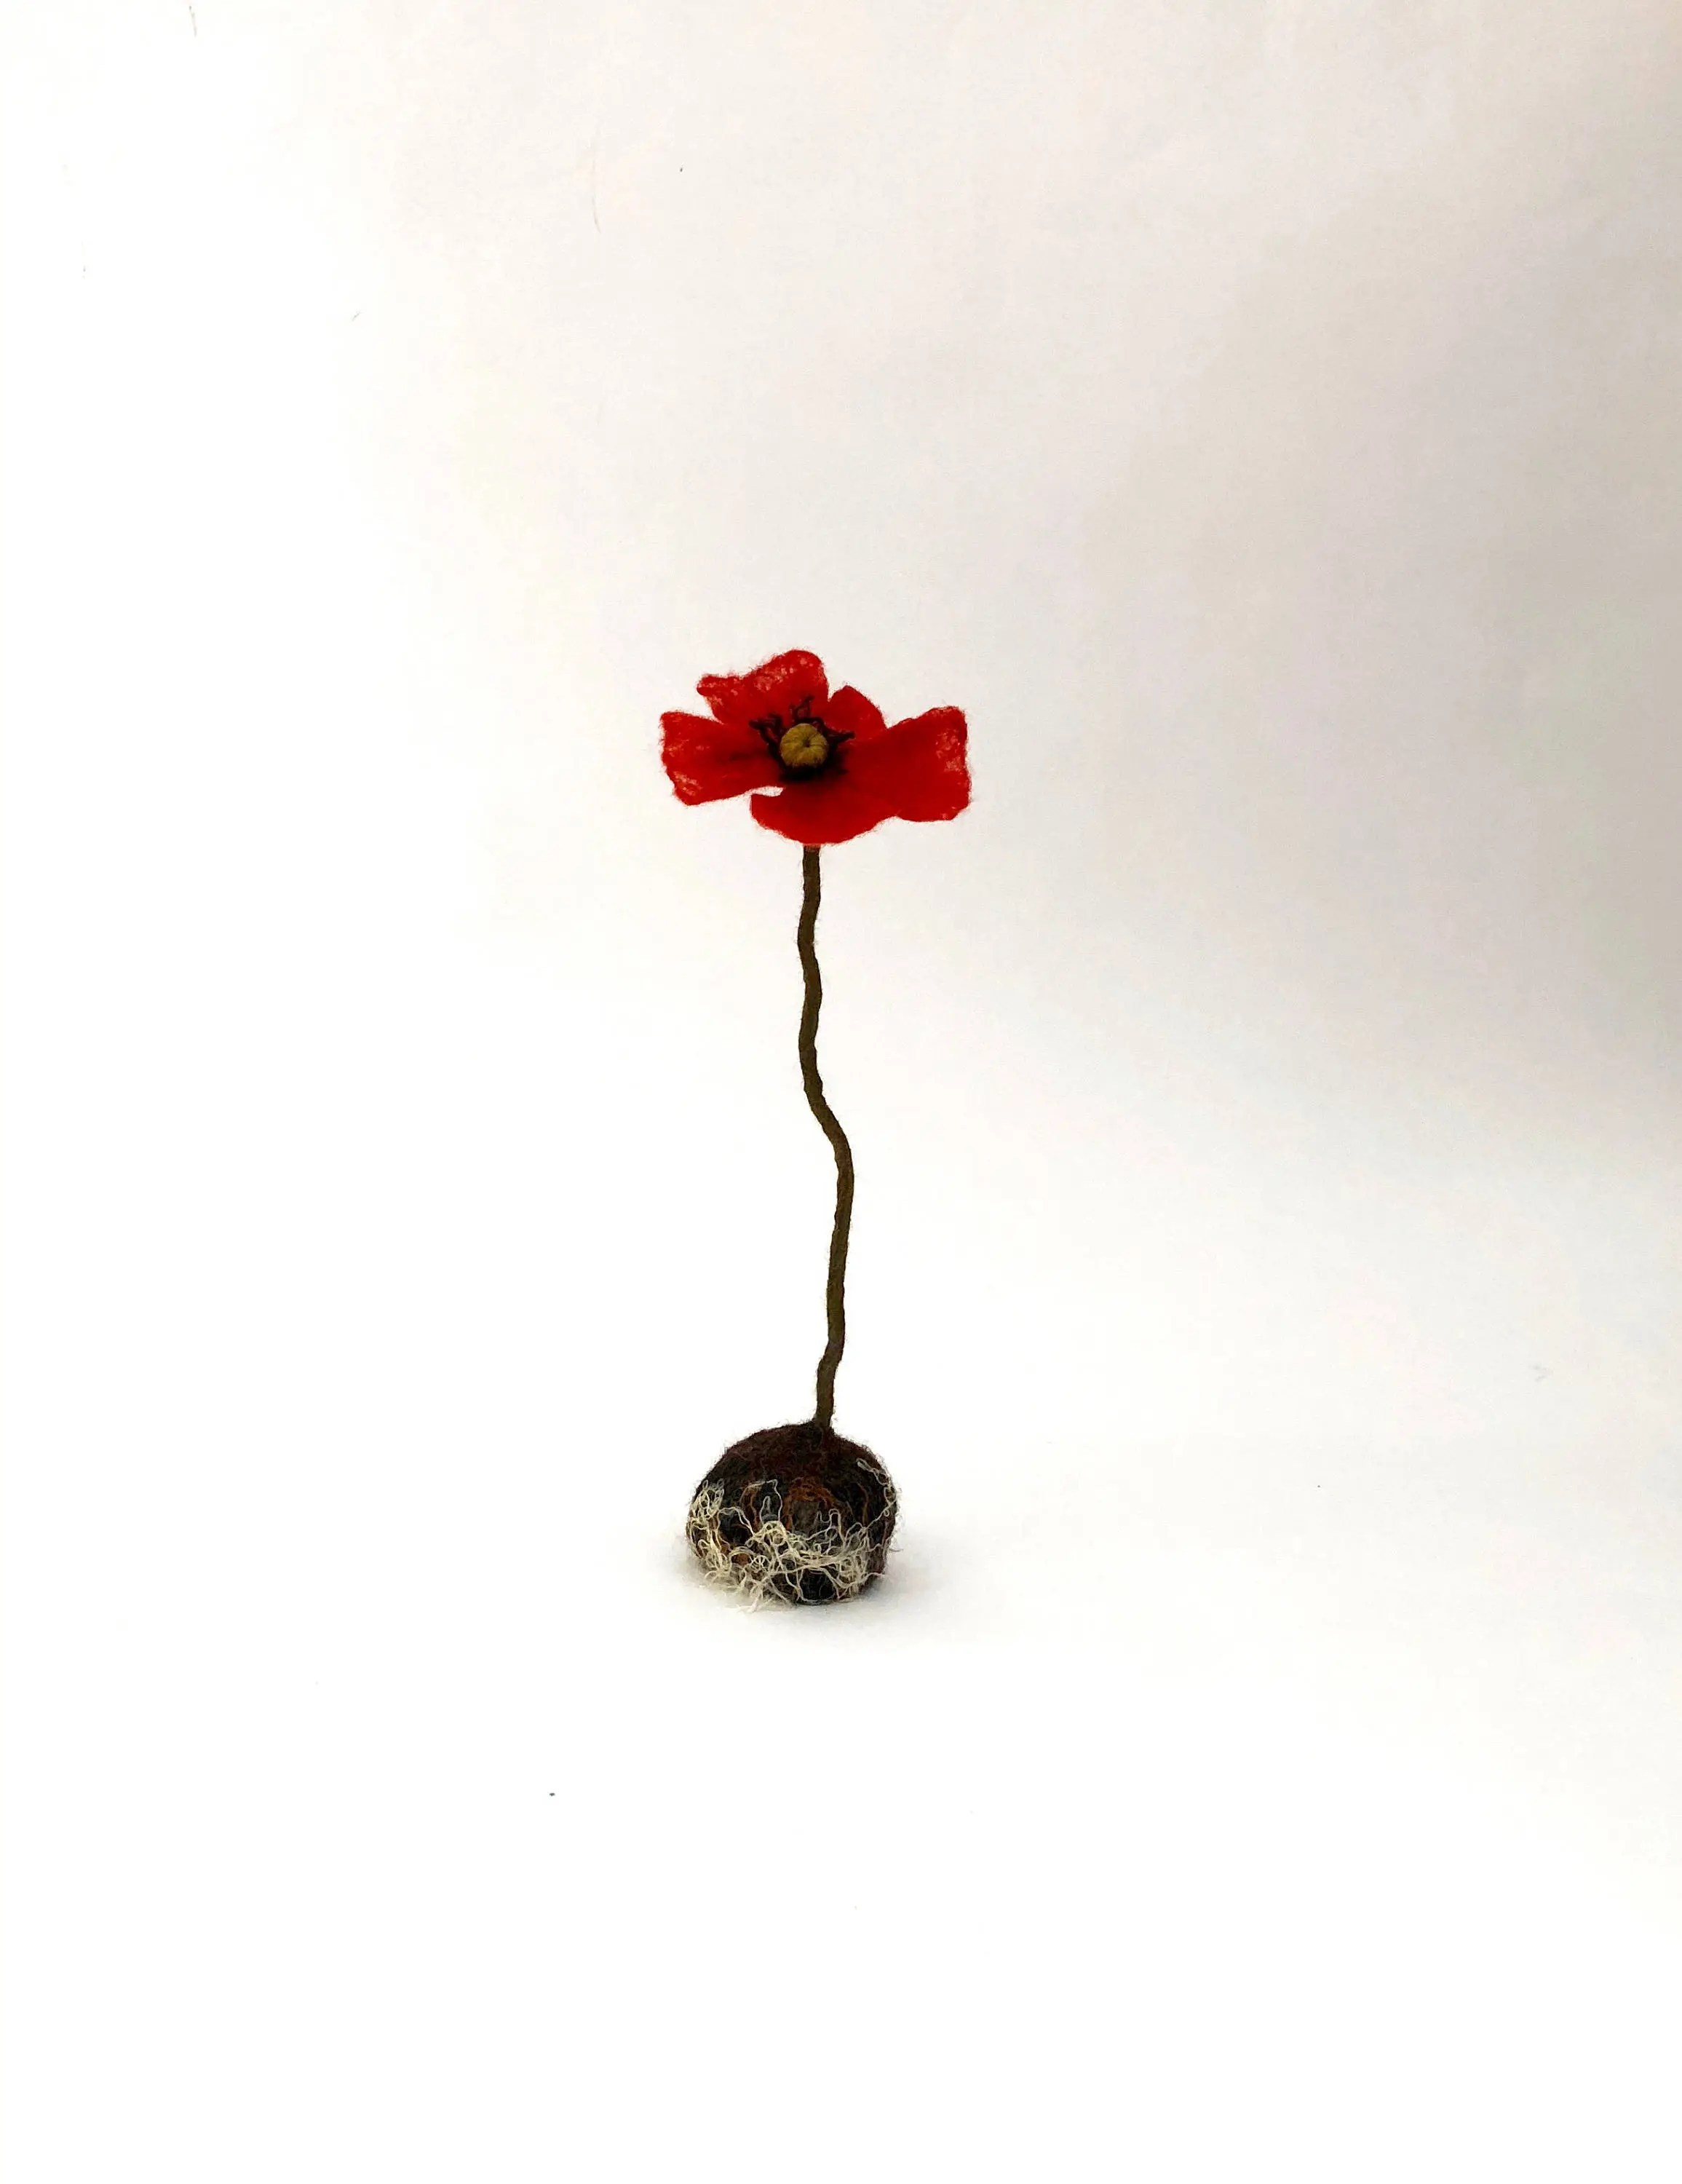 Porte Vetement But Felted Poppy With Soil And Roots Solitaire Red Flower Artificial Botanical Plant Urban Garden Symbol In Flanders Fields